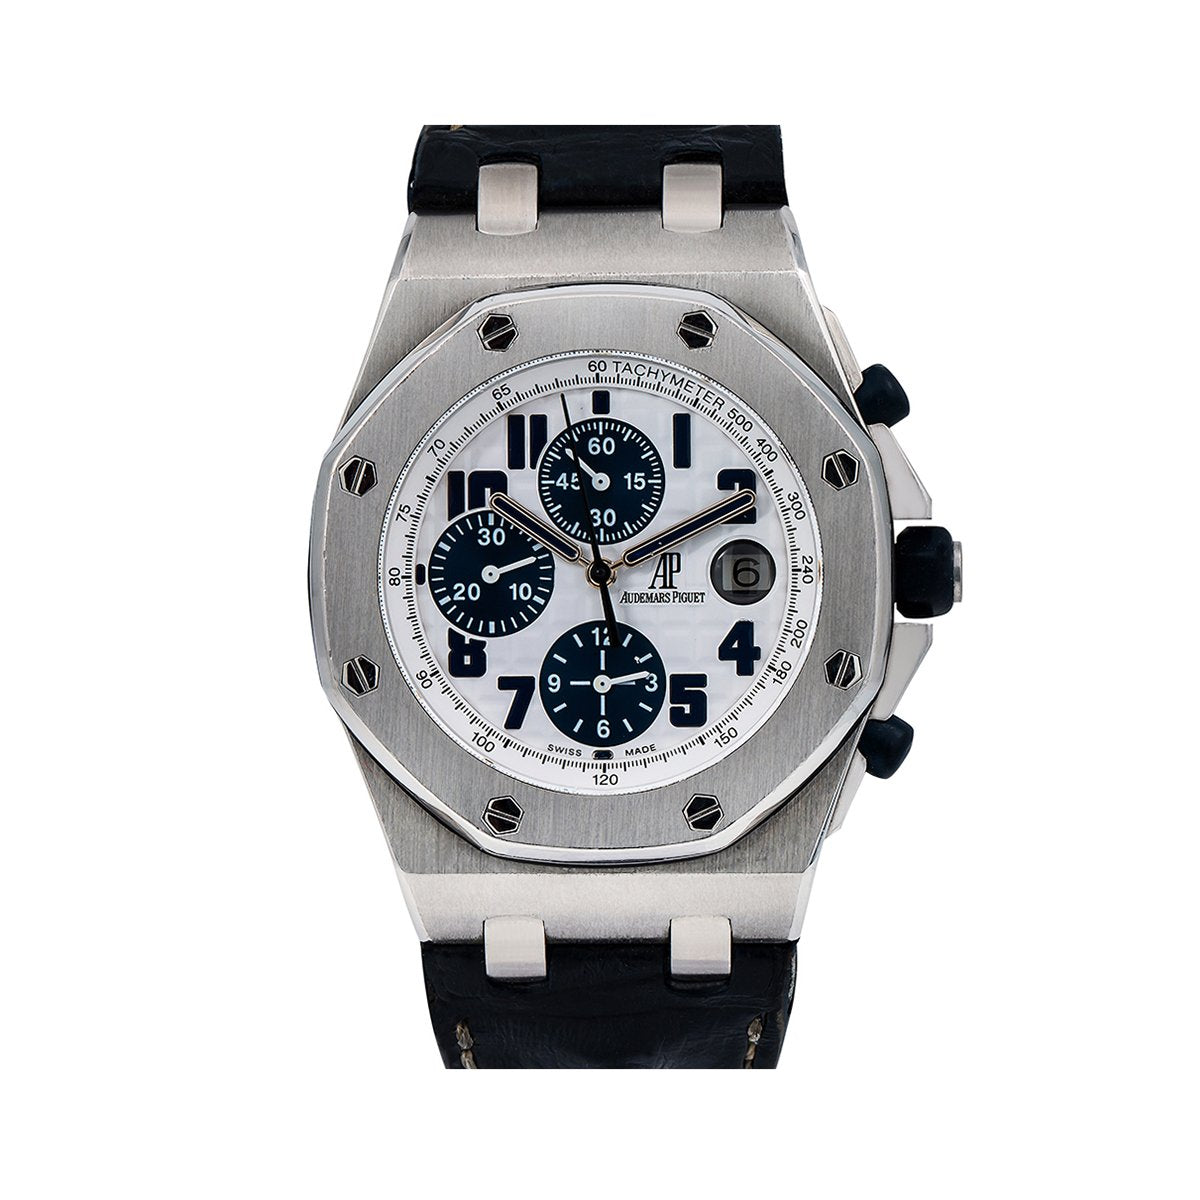 "Audemars Piguet Royal Oak Offshore ""Panda"" 26170ST 42MM White Dial With Black Leather Bracelet"